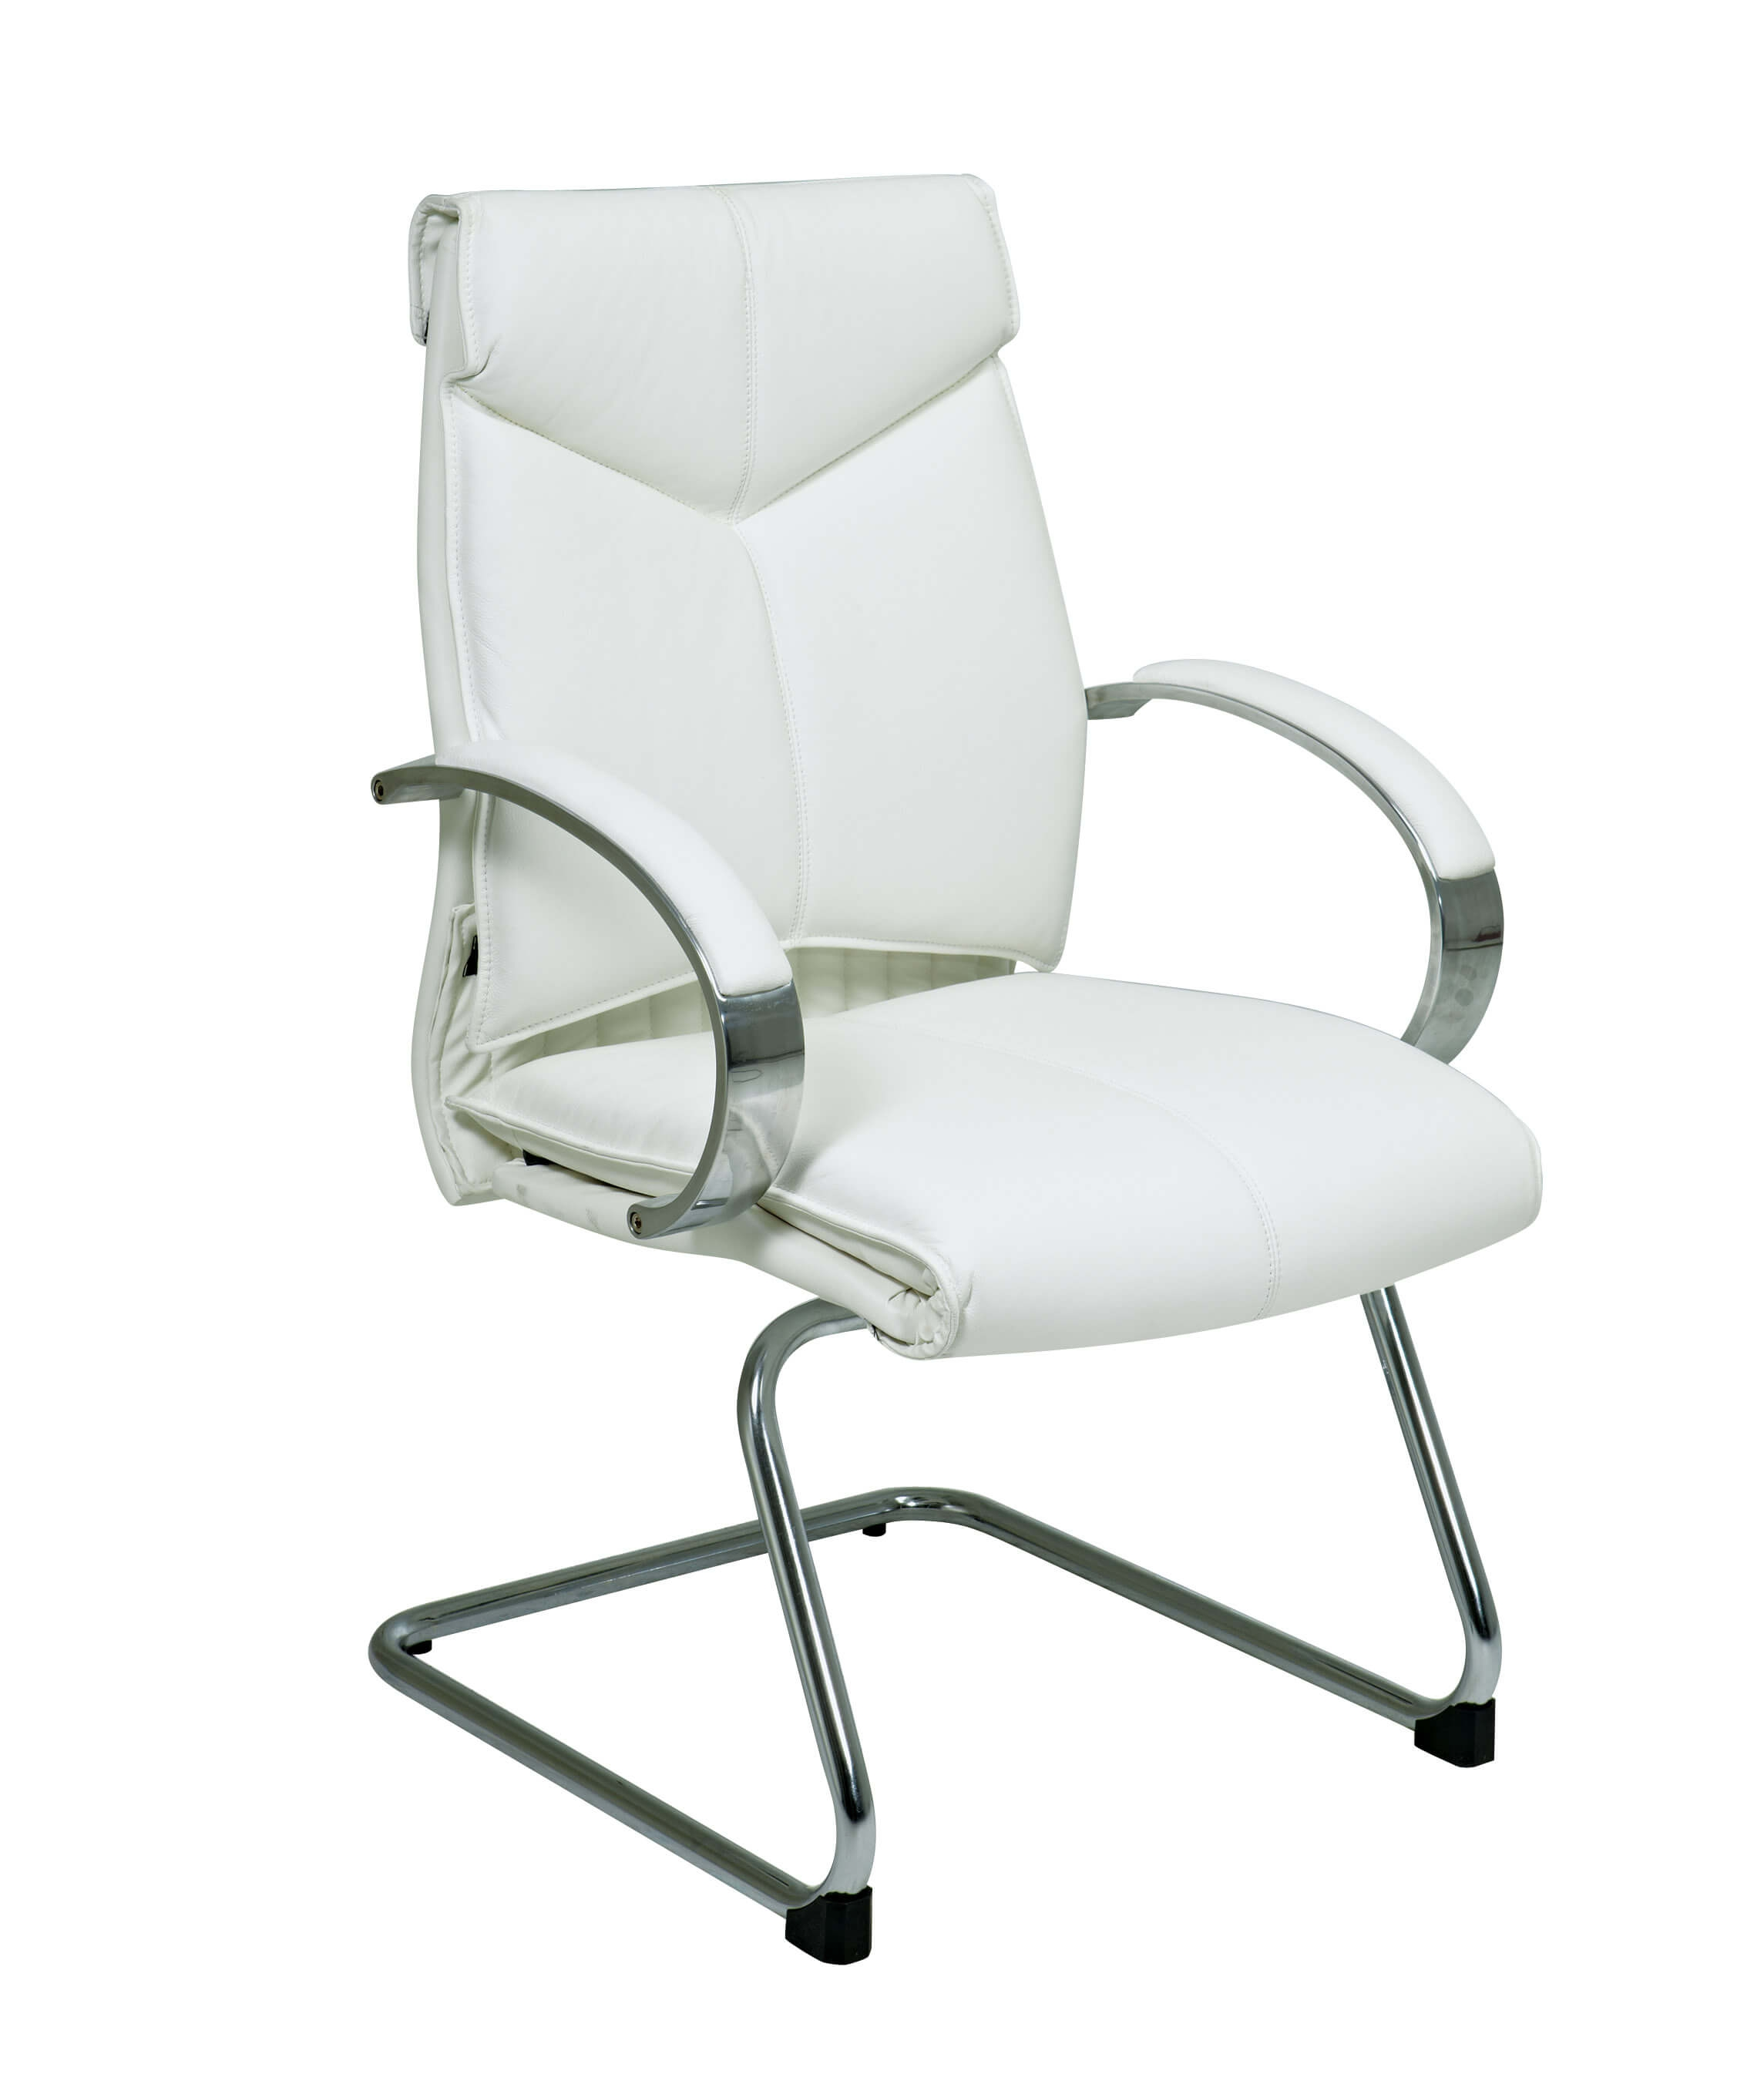 Side chairs with arms CUB 7275 PSO